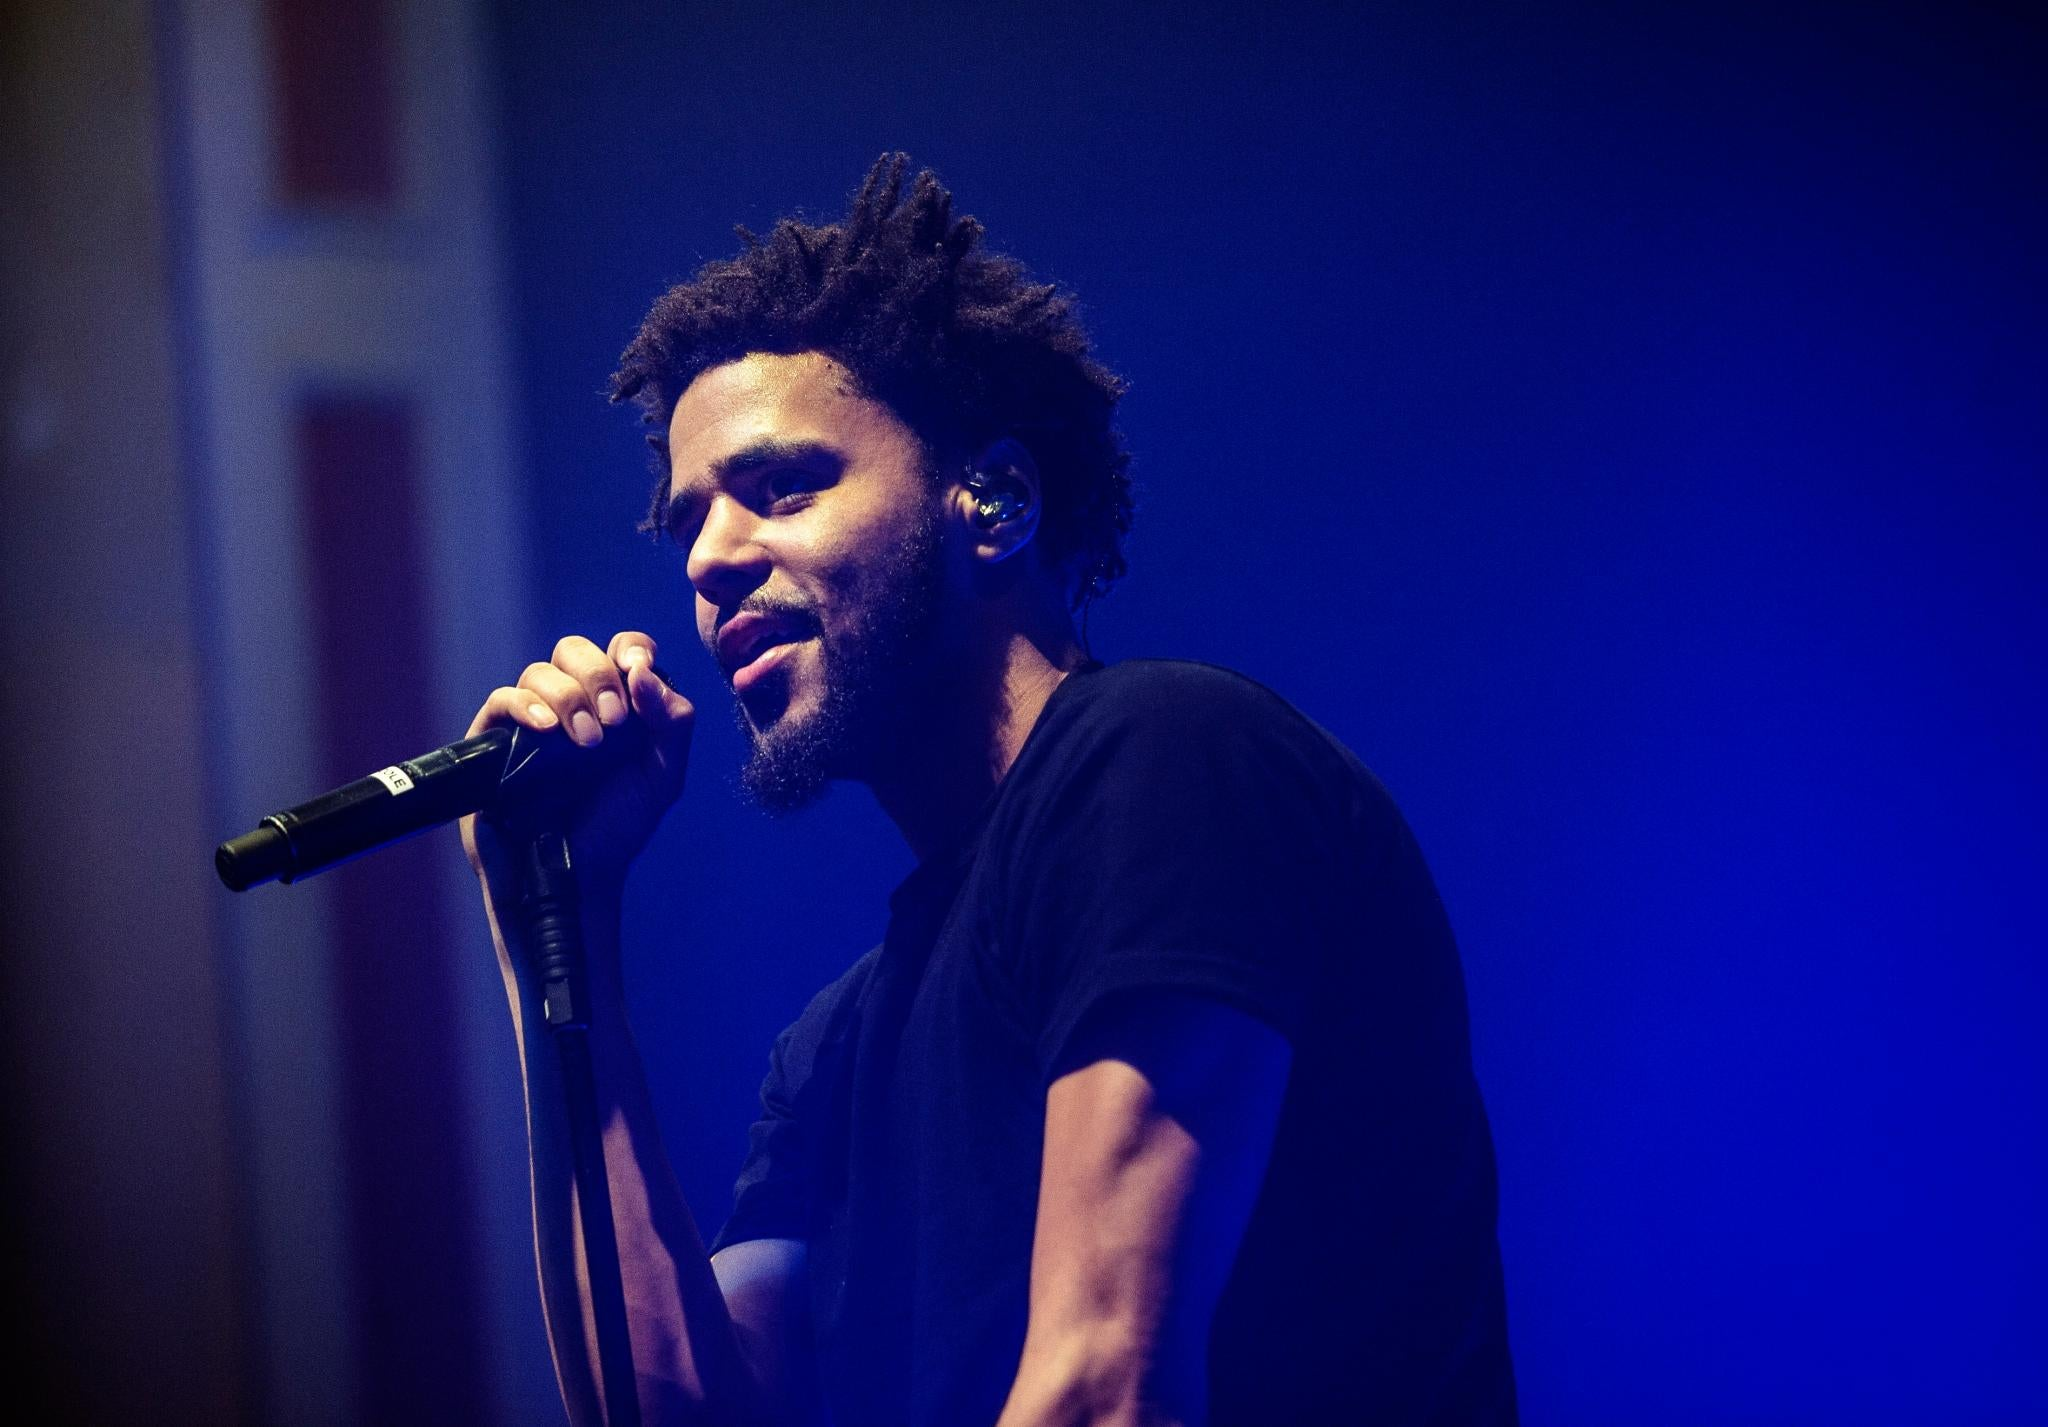 79c1b115a72 6 Times Celebs Showed Up and Showed Out for Their Fans. J. Cole ...